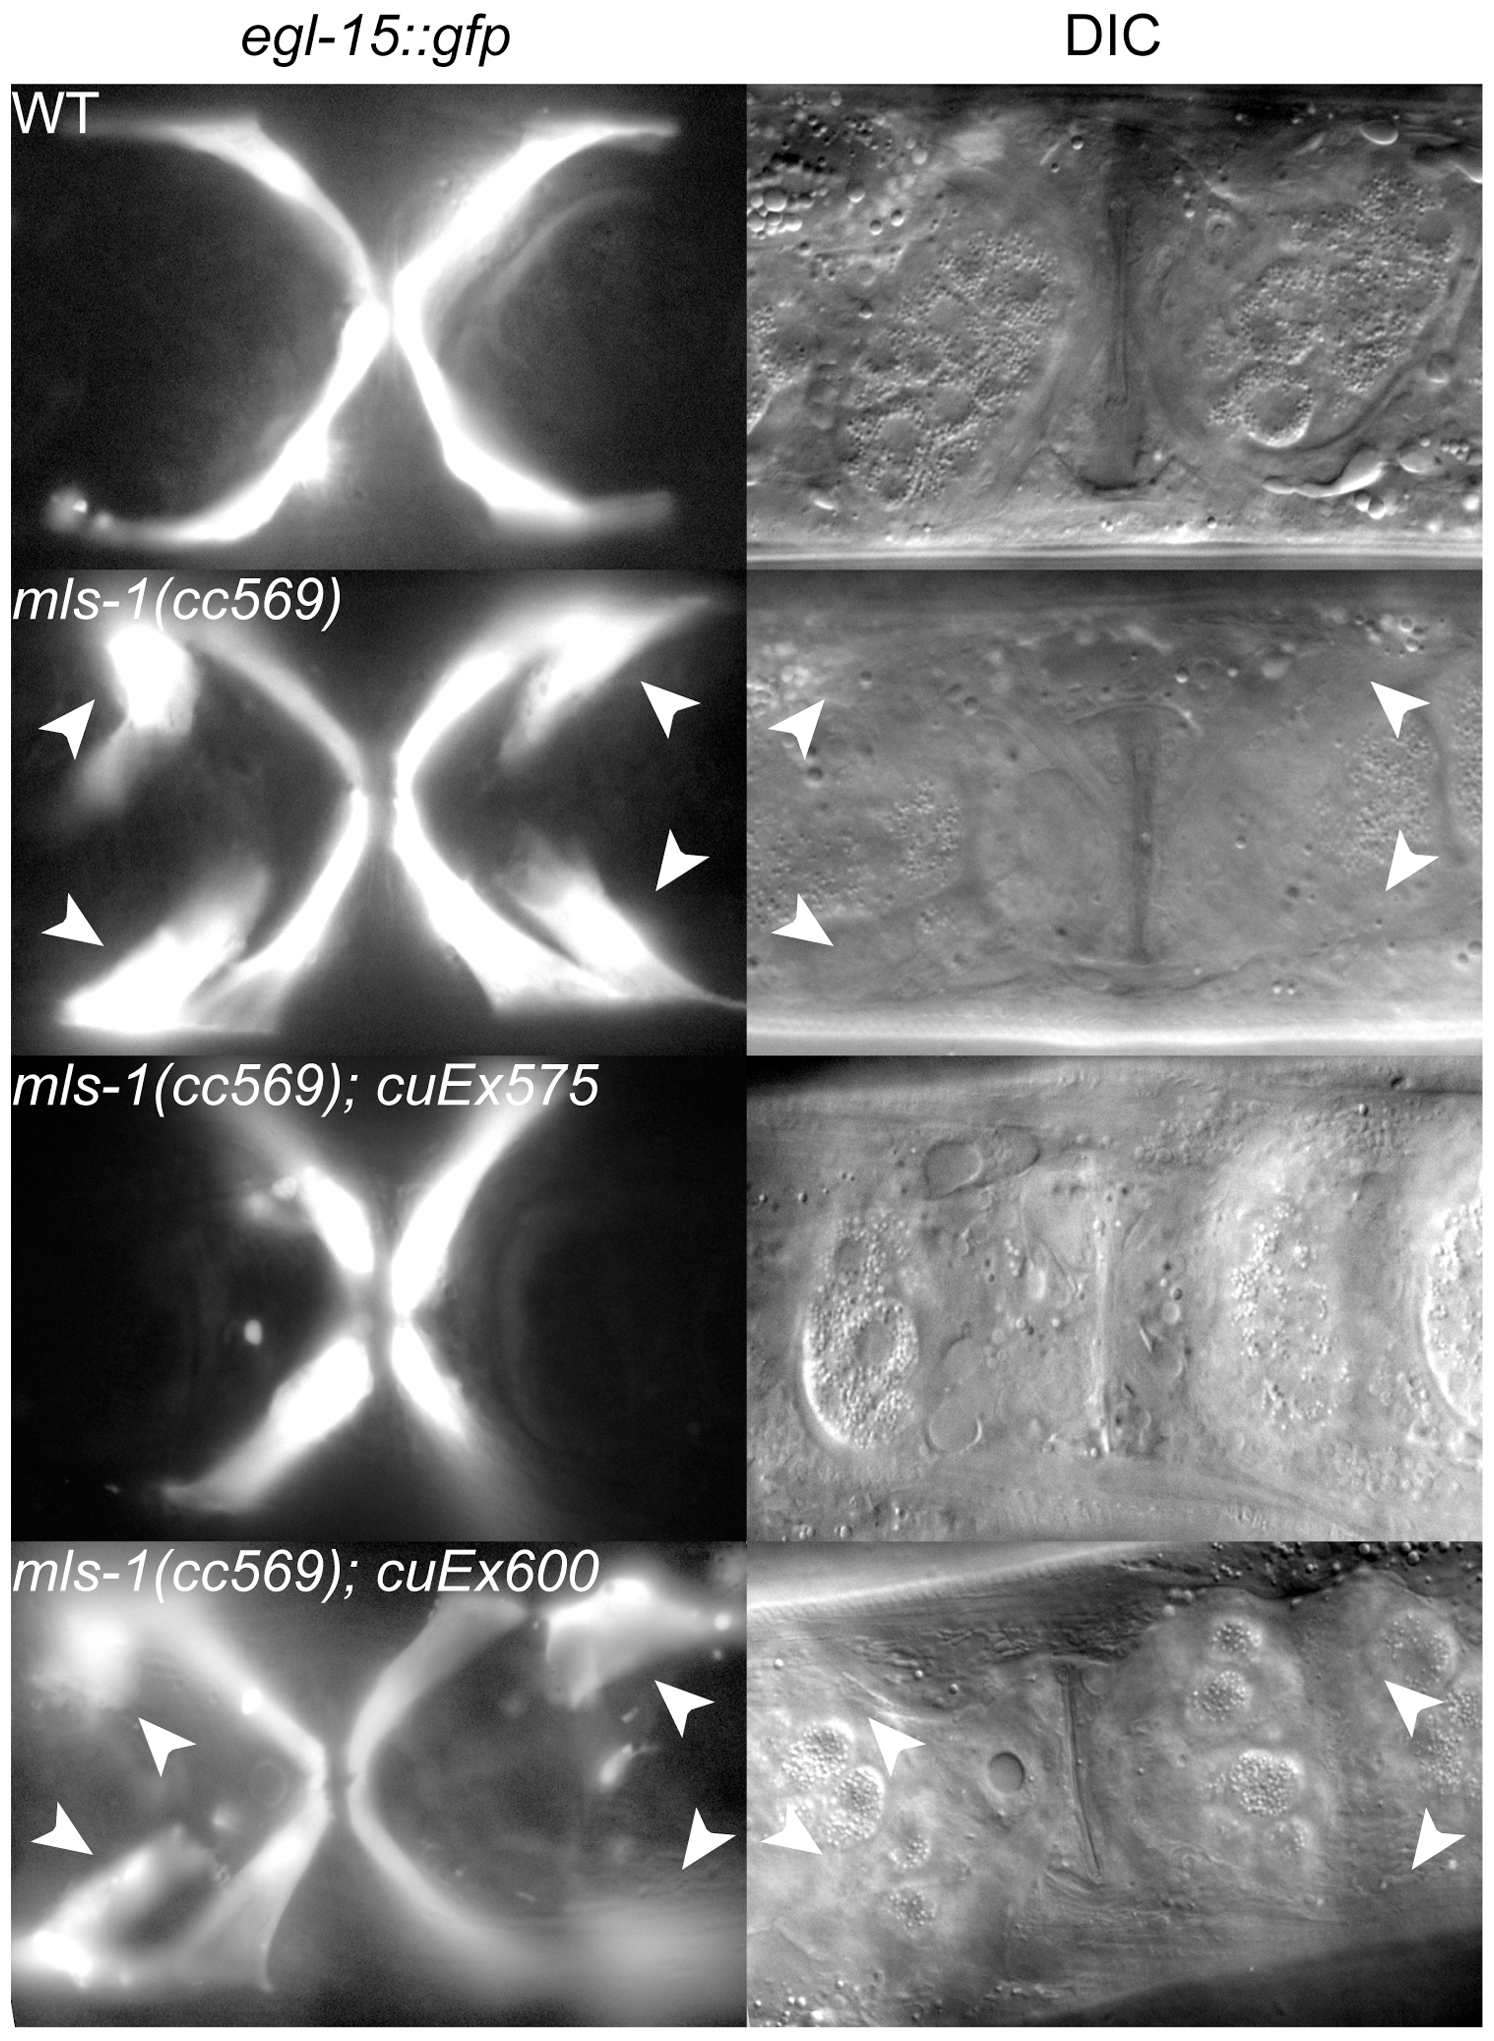 MLS-1 uterine muscle specification activity depends on its eh1 motif.